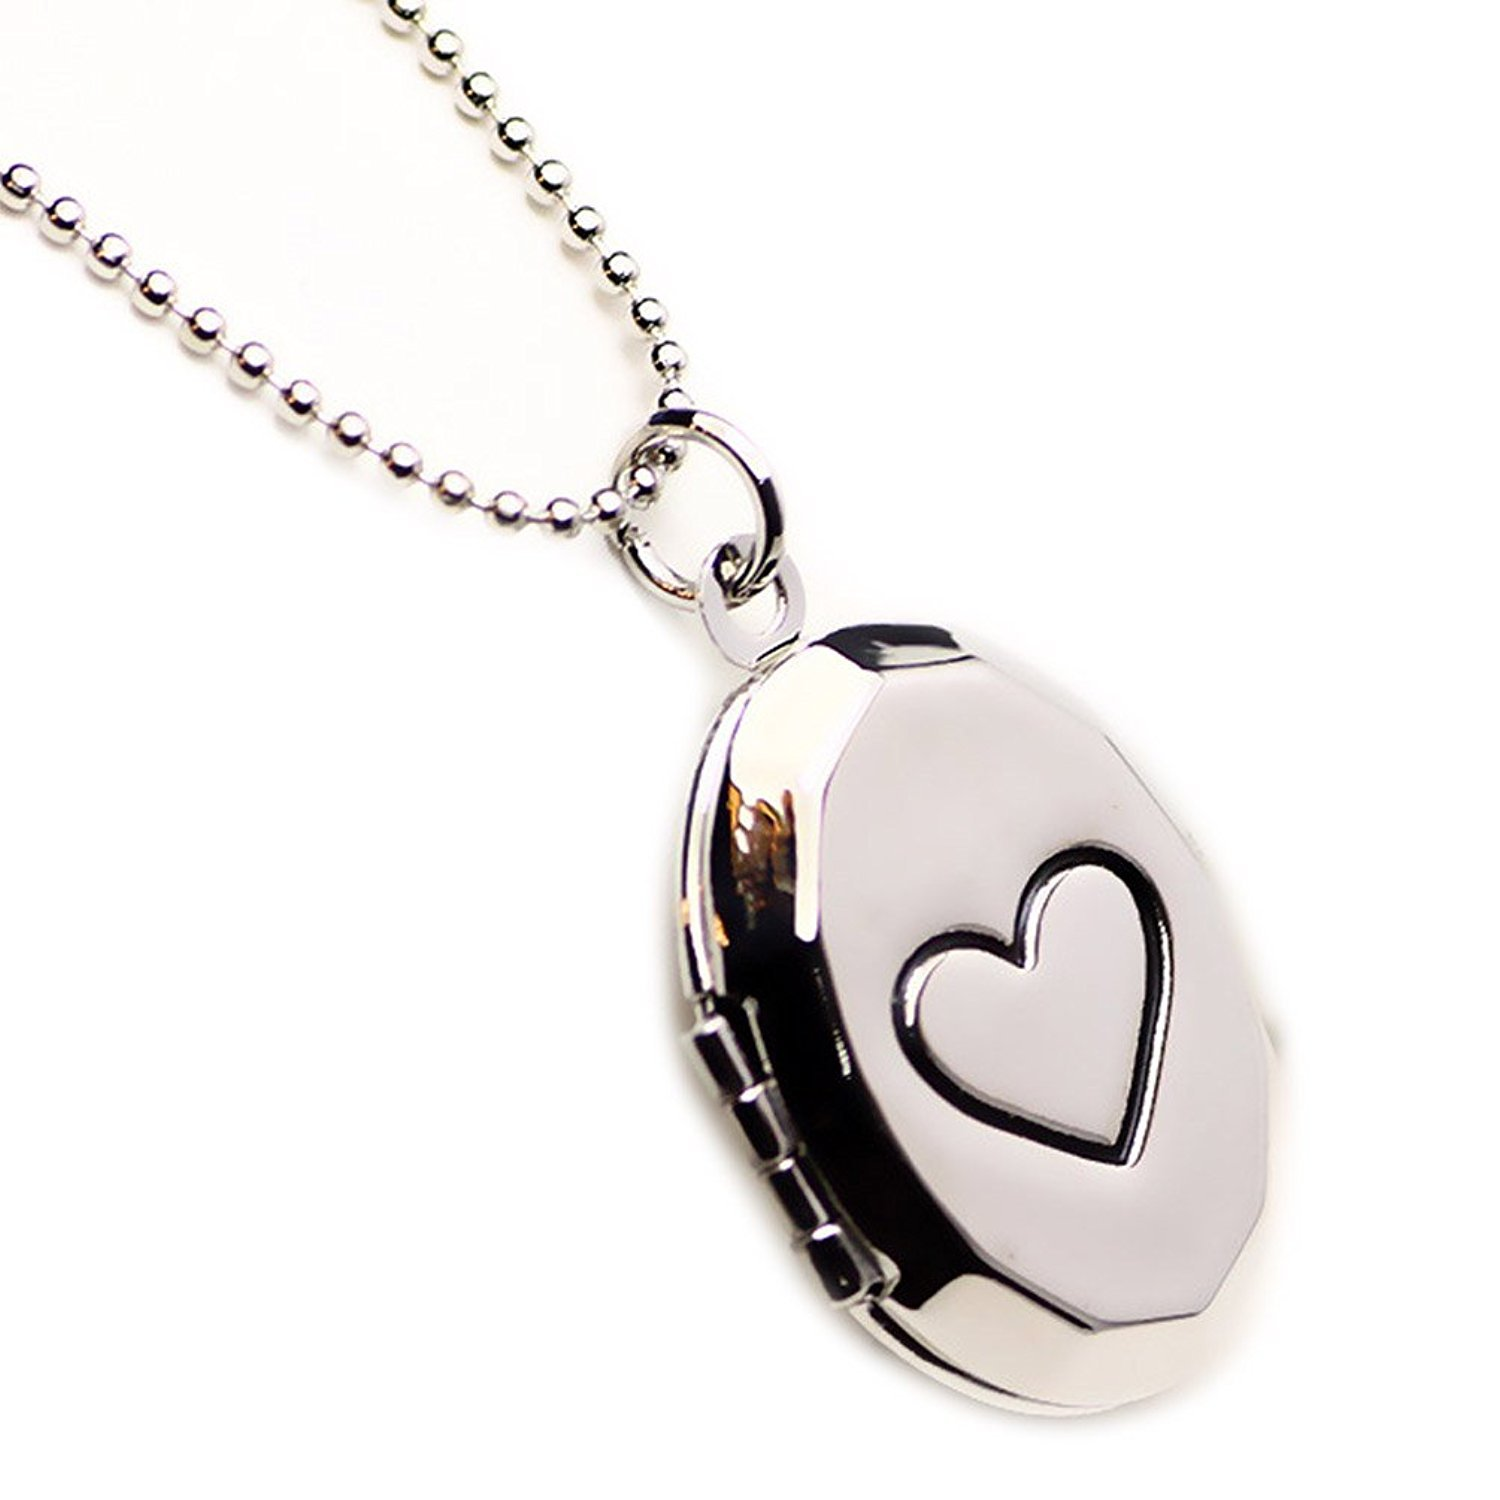 3156b80befdeb Photo Locket Necklace Diy Picture Carving Heart Oval Pendant for Girl White  Gold Plated 18 inch